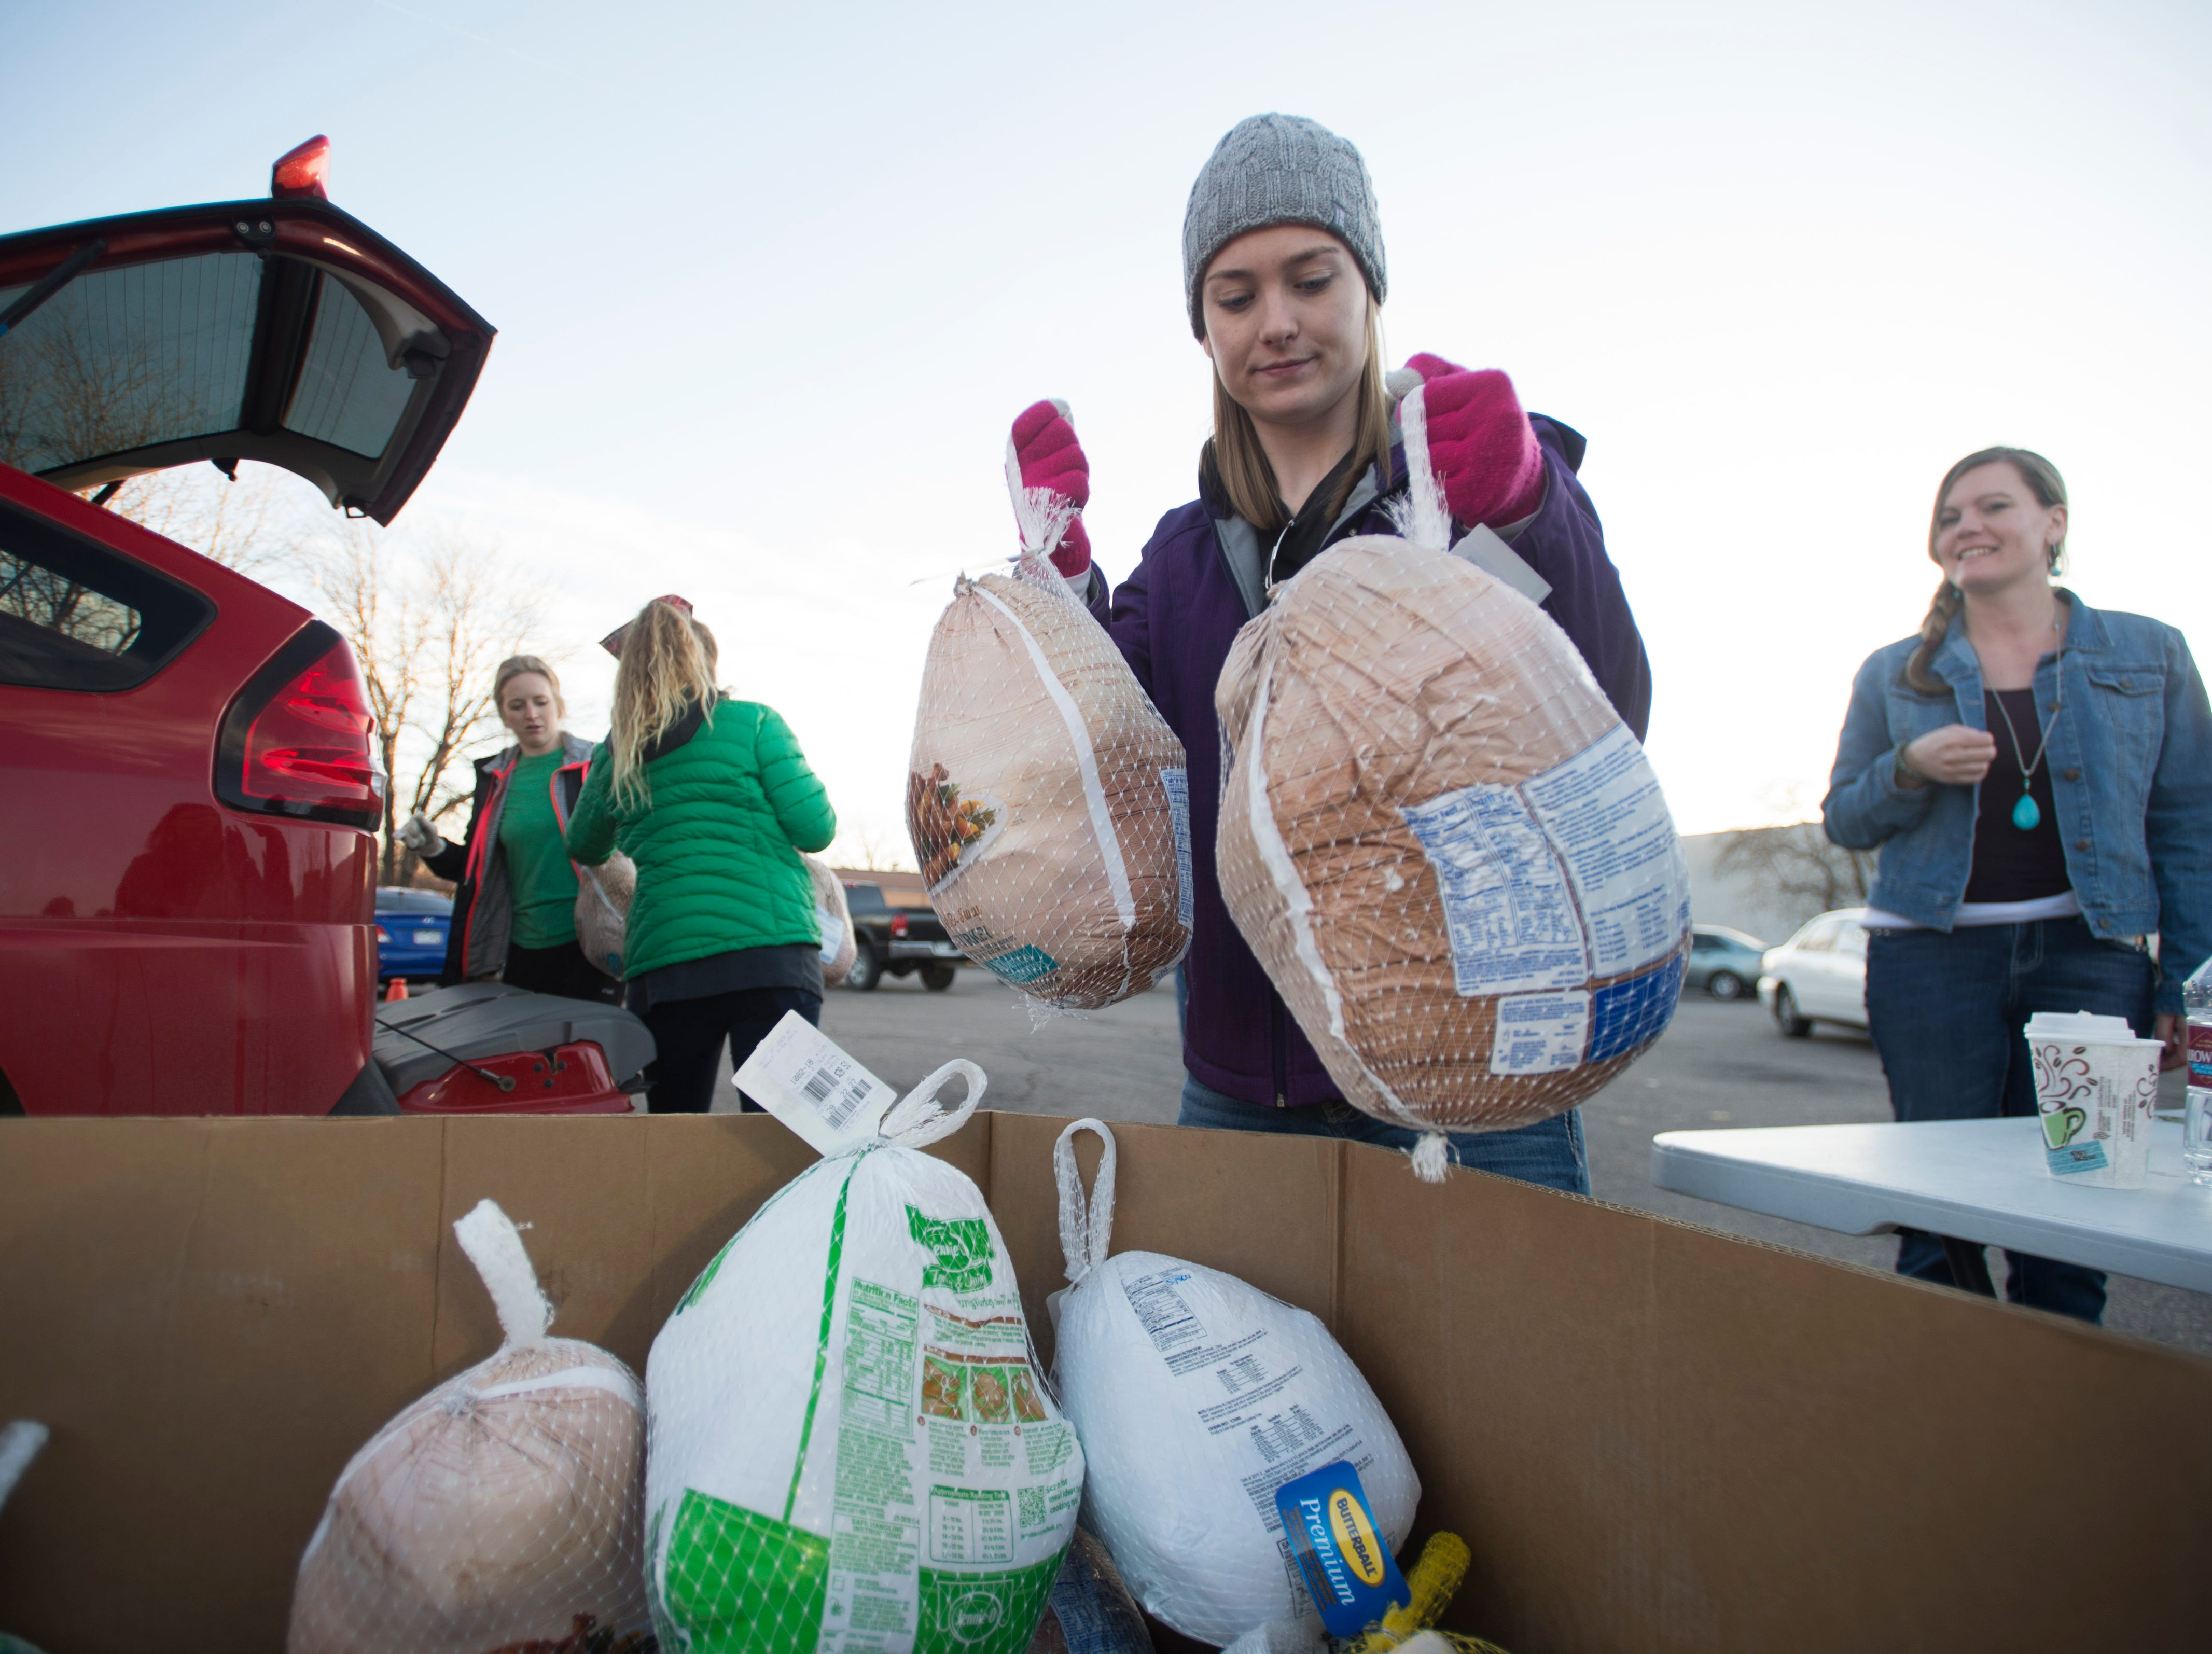 Volunteer Kylie Jaramillo drops donated turkeys into a bin during the Food Bank for Larimer County's Stuff The Truck Turkey Donation on Thursday, November 15, 2018.